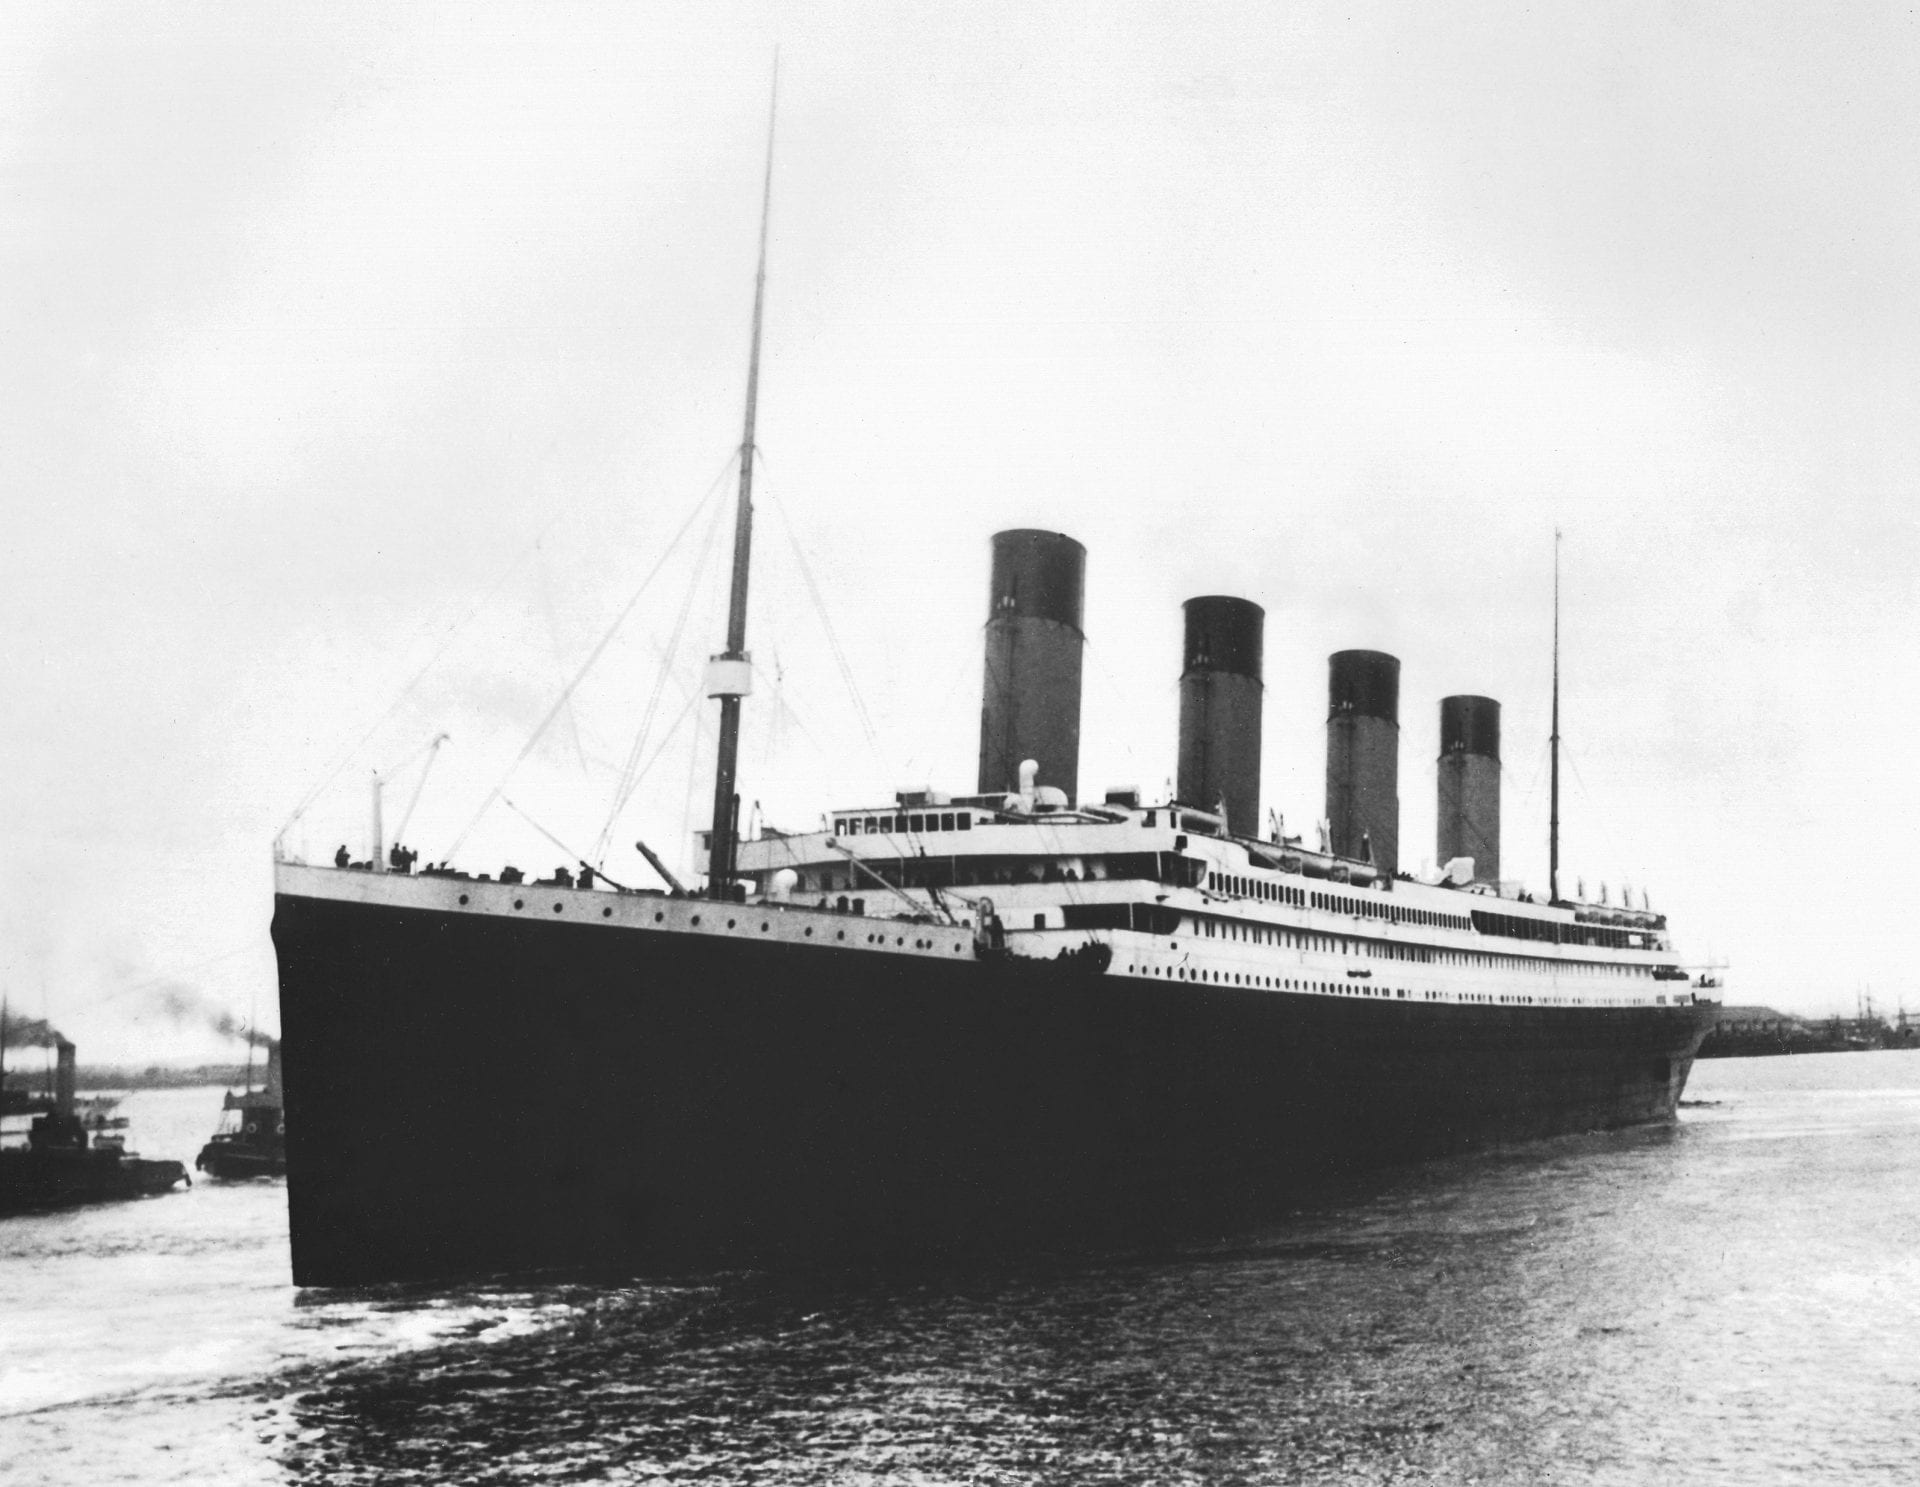 Titanic at port, Titanic before it sank